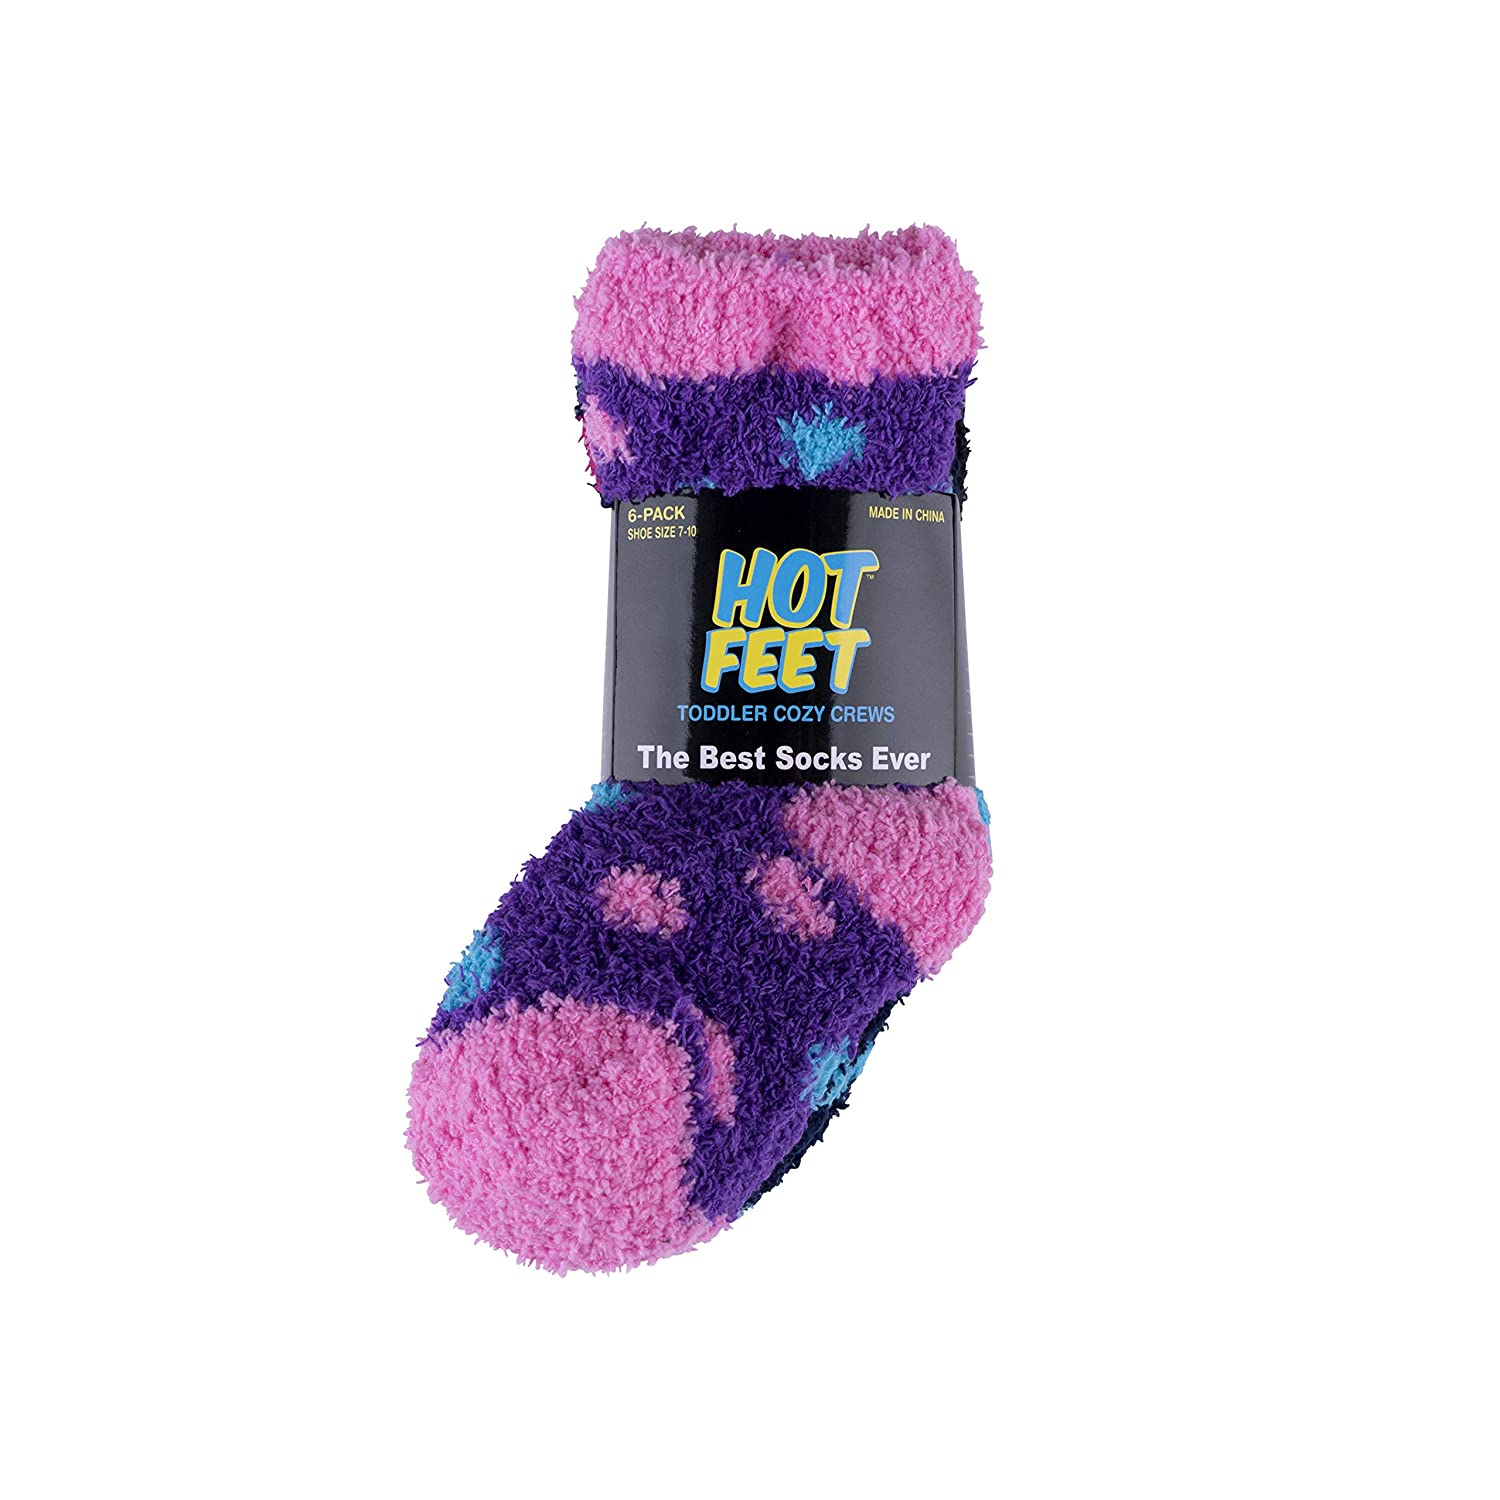 Hot Feet Solid Patterned Cozy Crew 6 pk Socks for Toddler Boys and Girls Sizes 4 /– 5.5